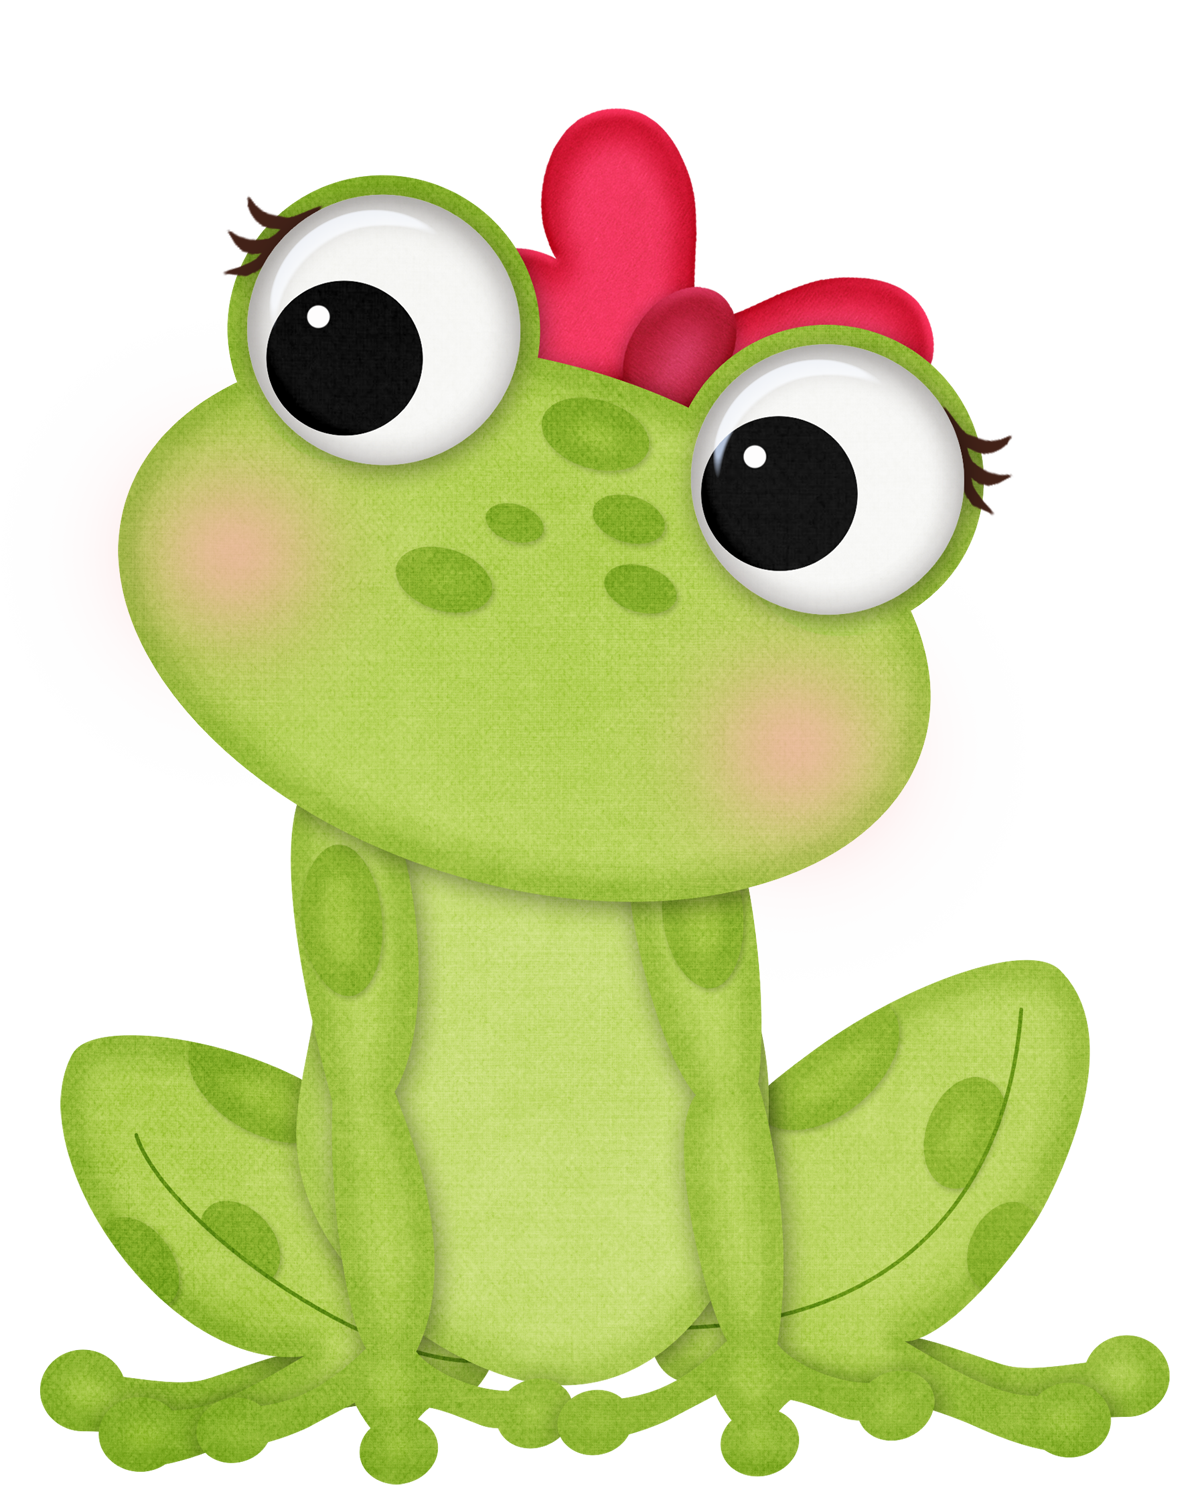 Frog with heart clipart image library library 2nd grade polka dots | Peace, Love & Teaching: September 2012 | Frog ... image library library